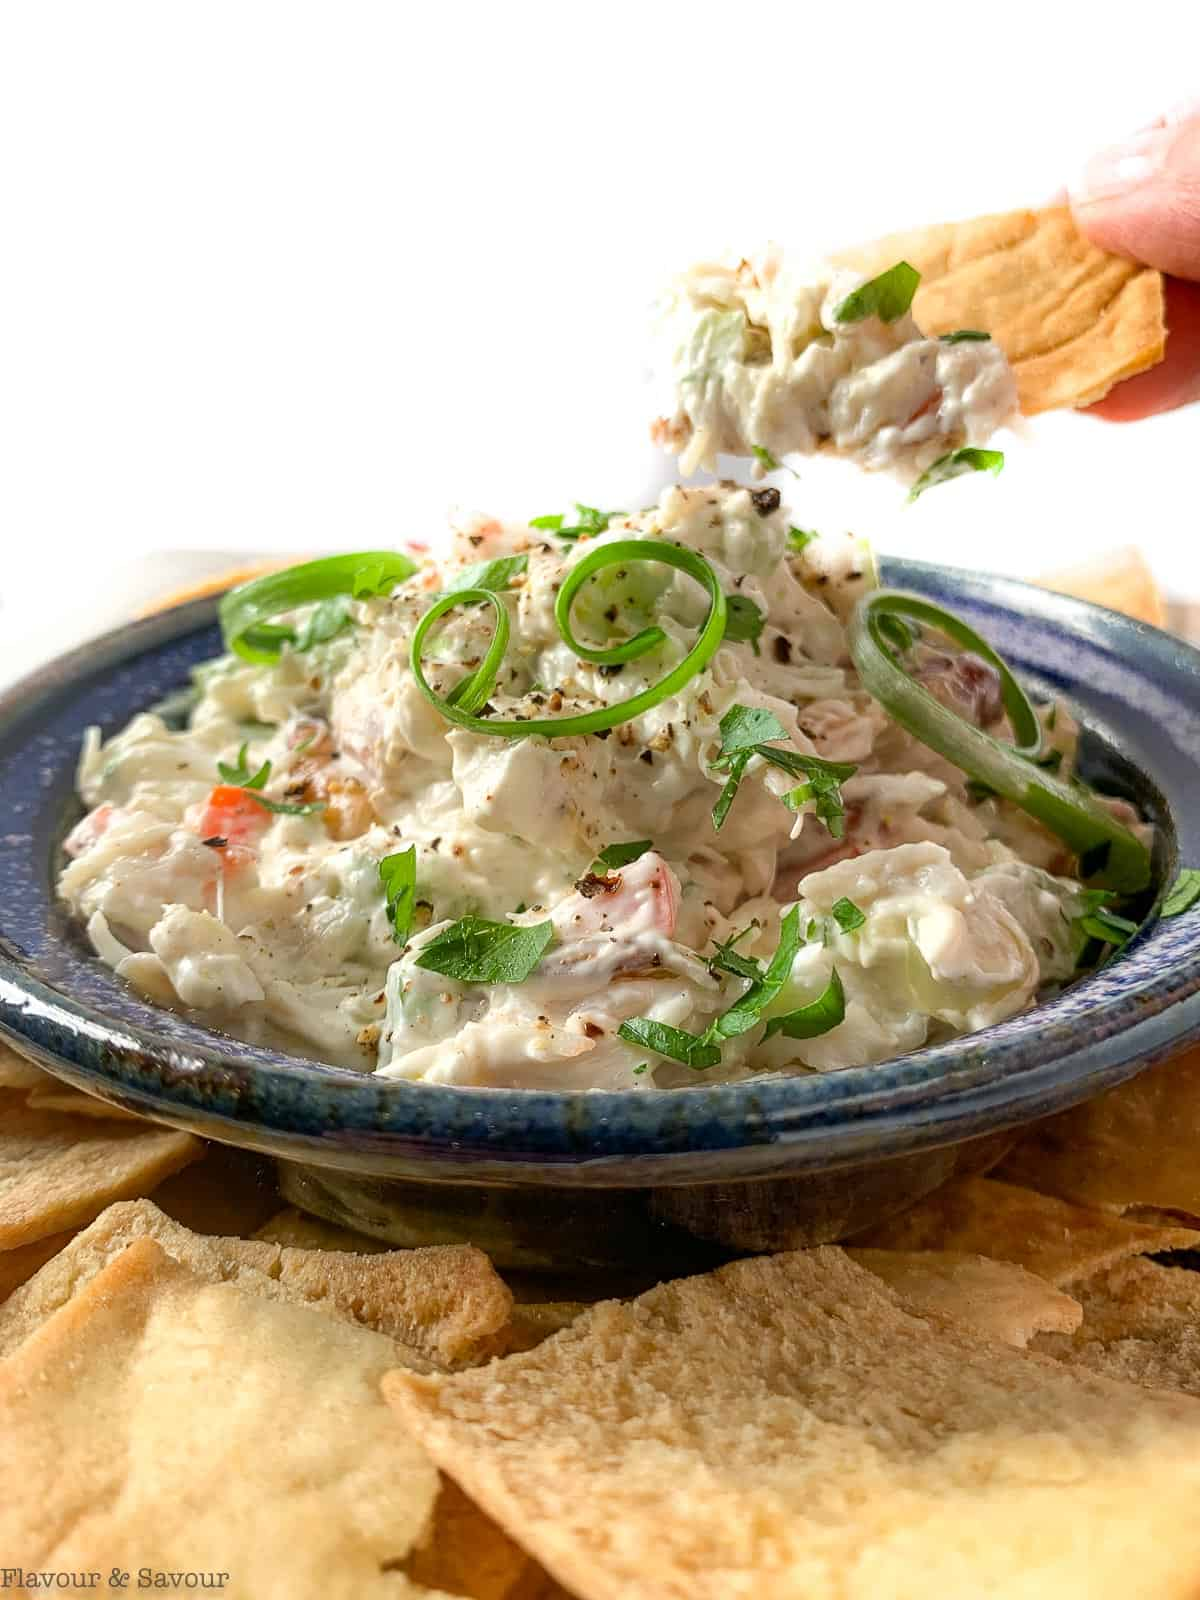 A scoop of cold crab dip on a cracker